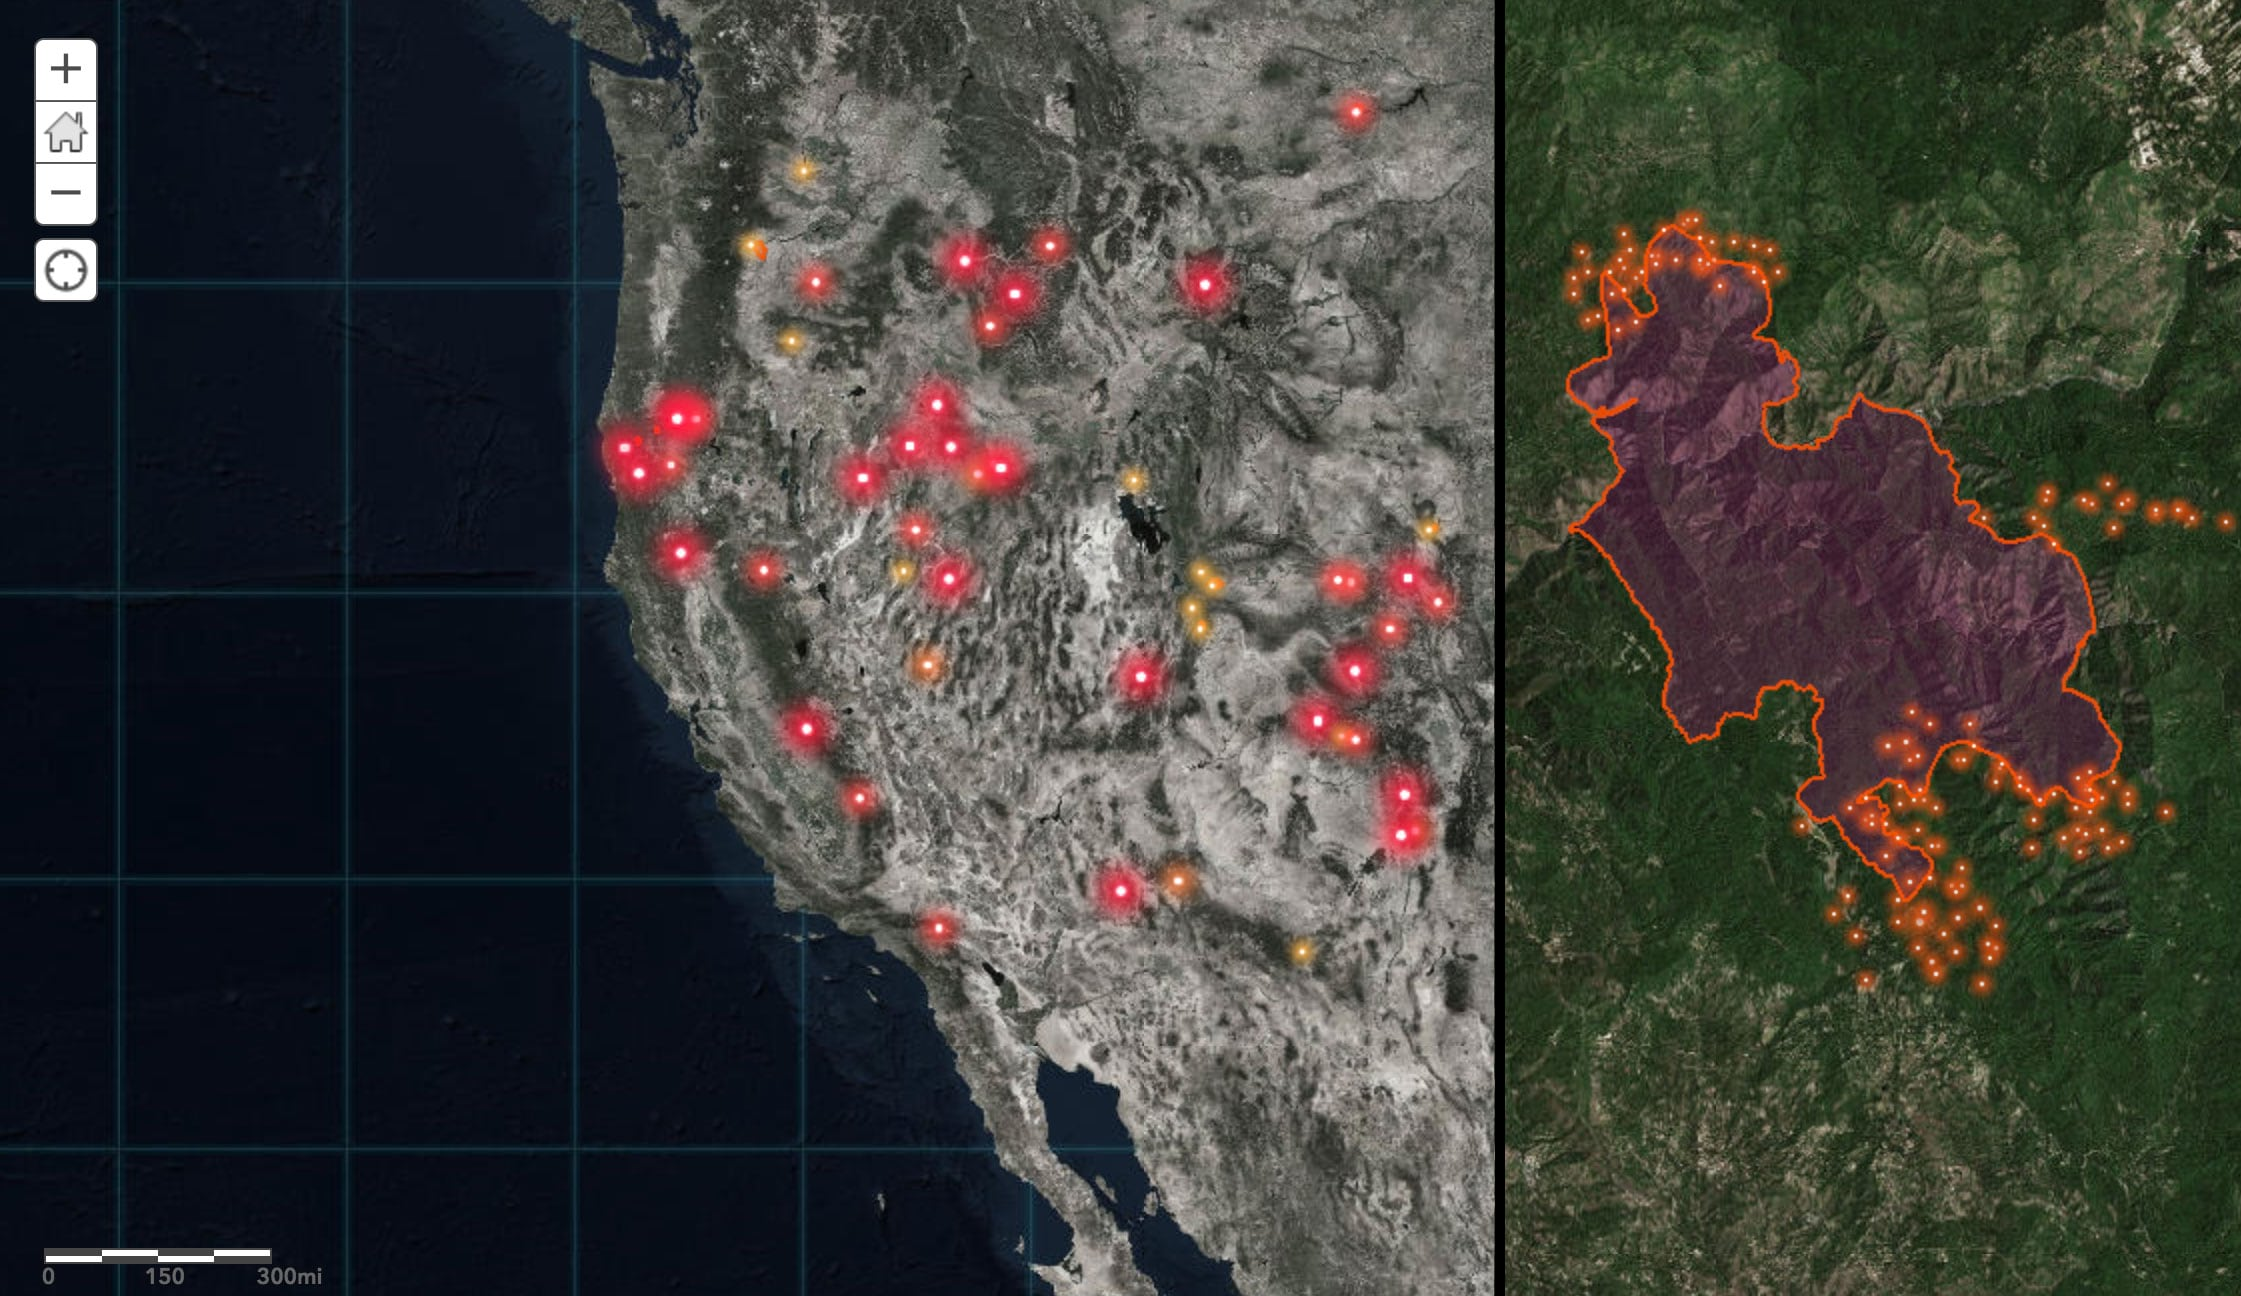 US wildfire map using firefly